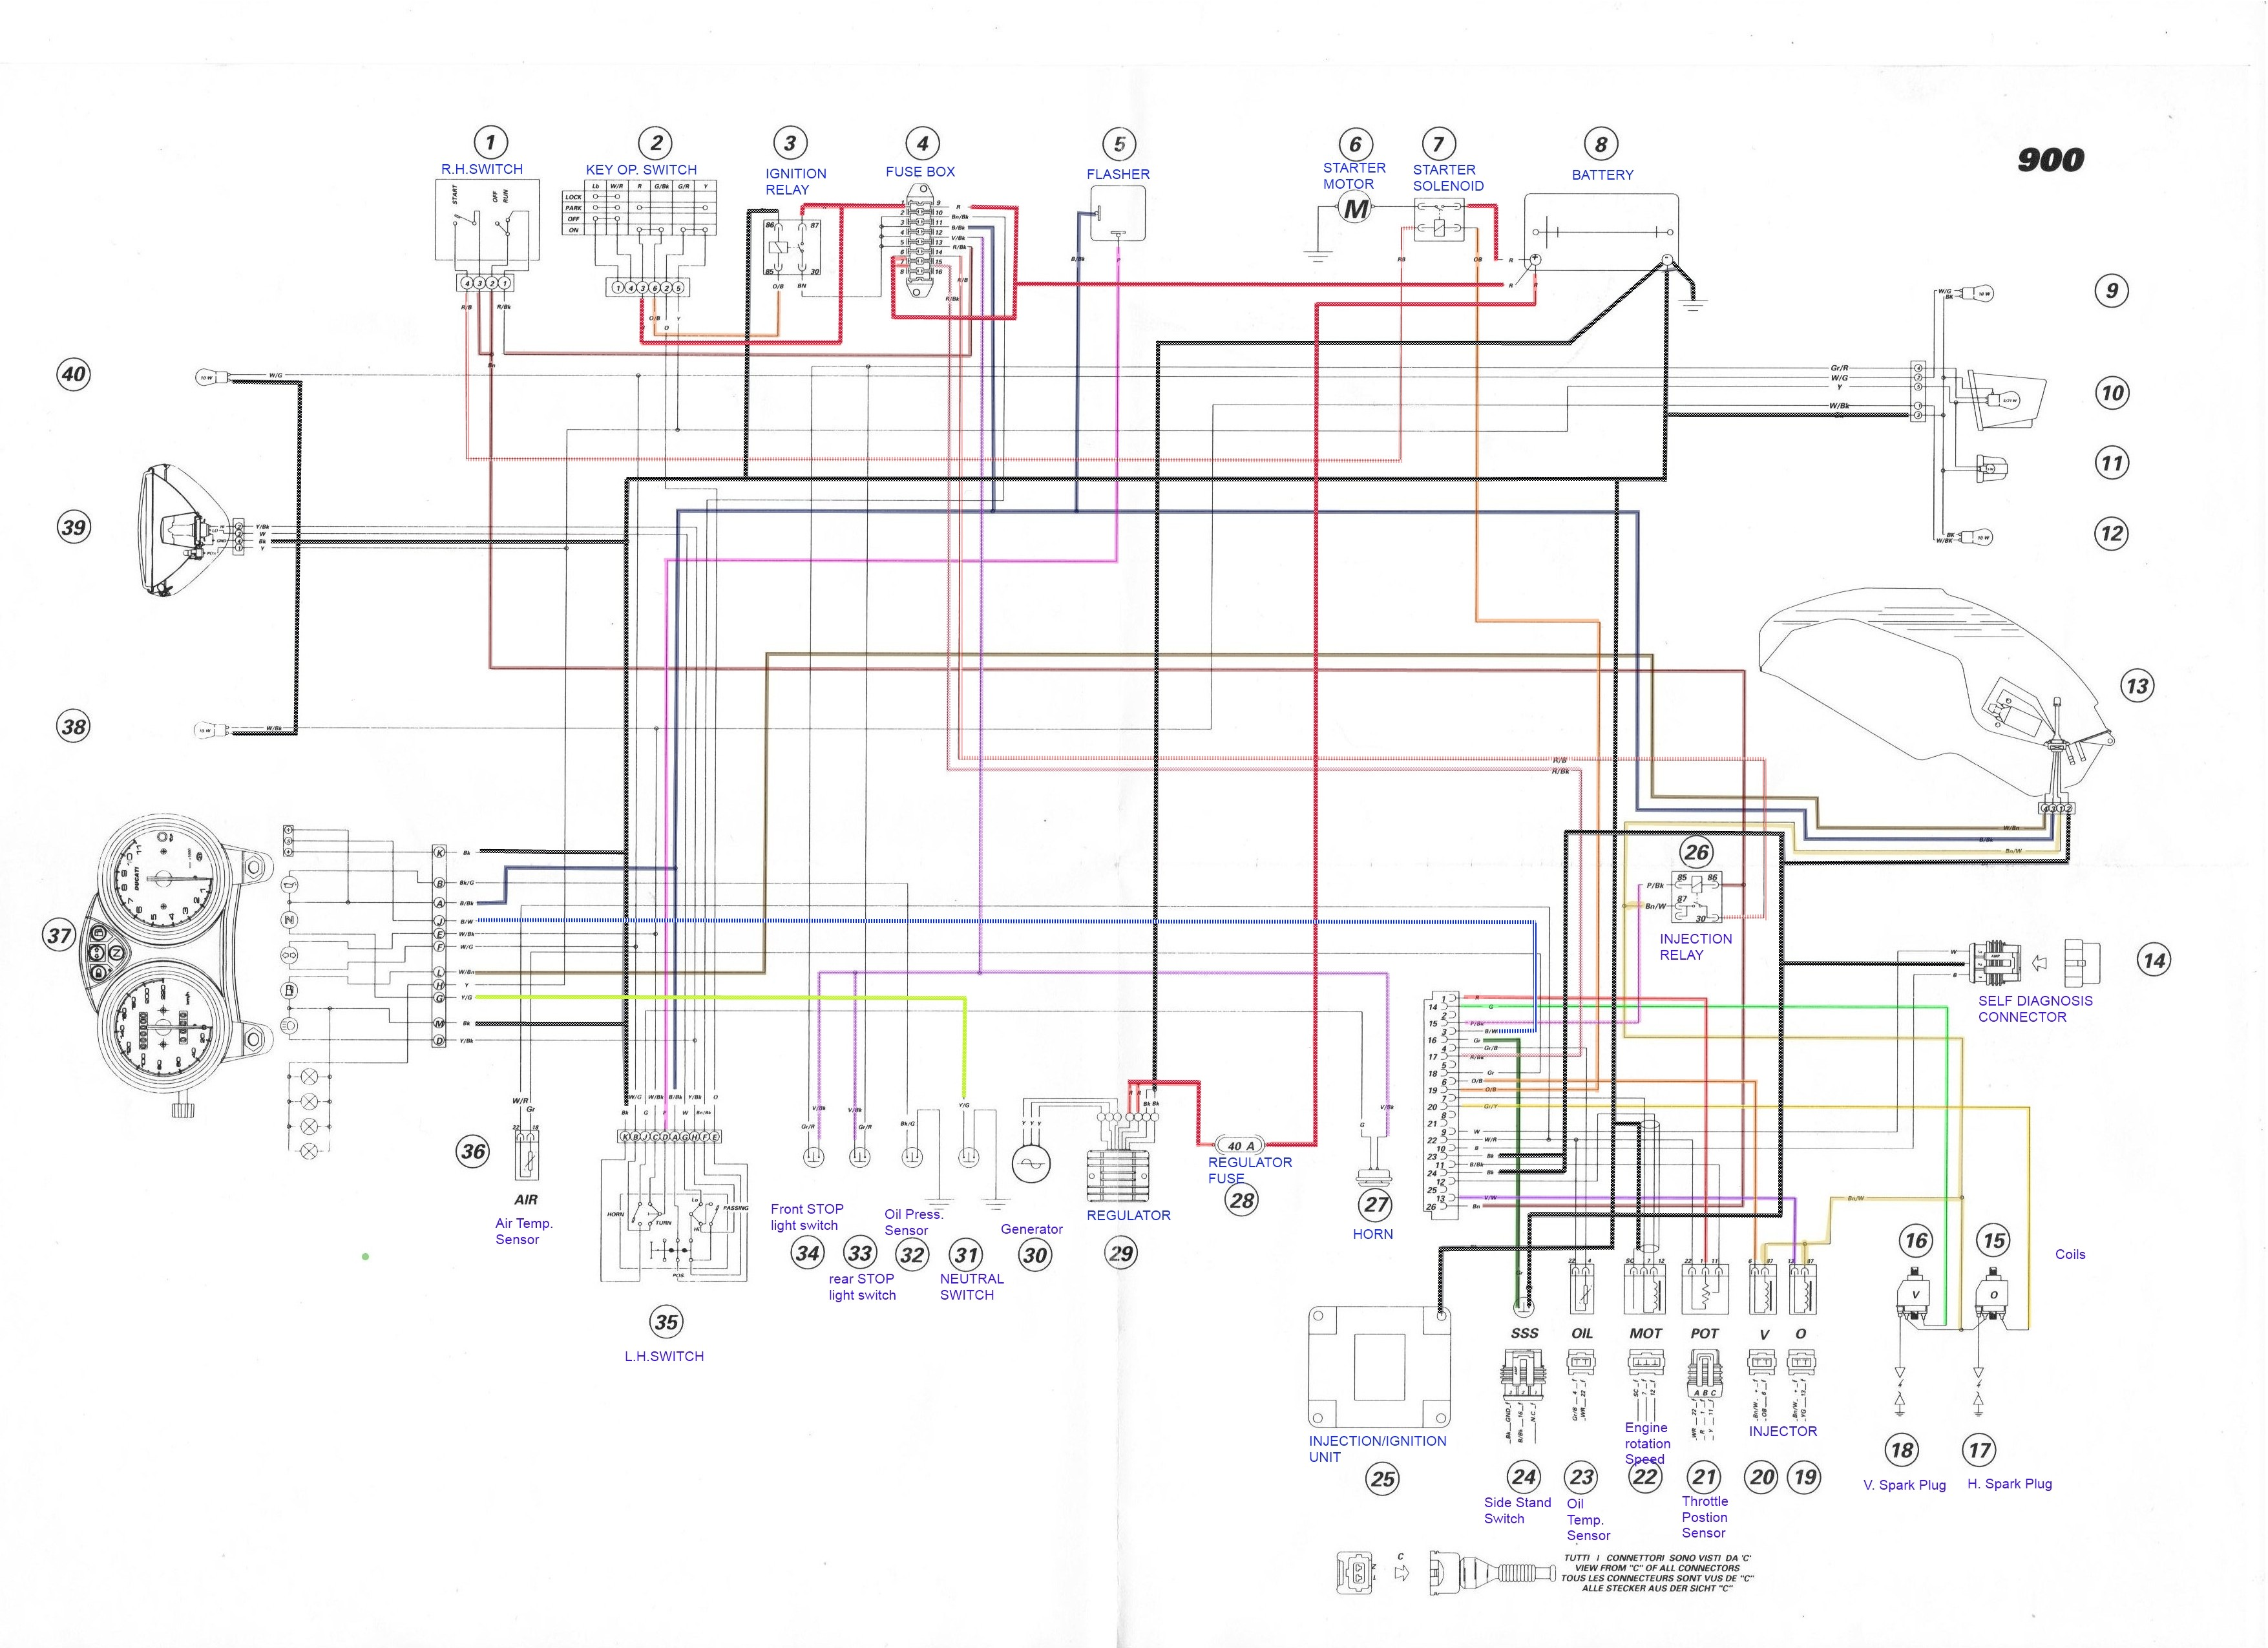 Wiring Diagram for Trailer Wire Trailer Wiring Diagram Moreover Ducati Supersport Wiring Of Wiring Diagram for Trailer